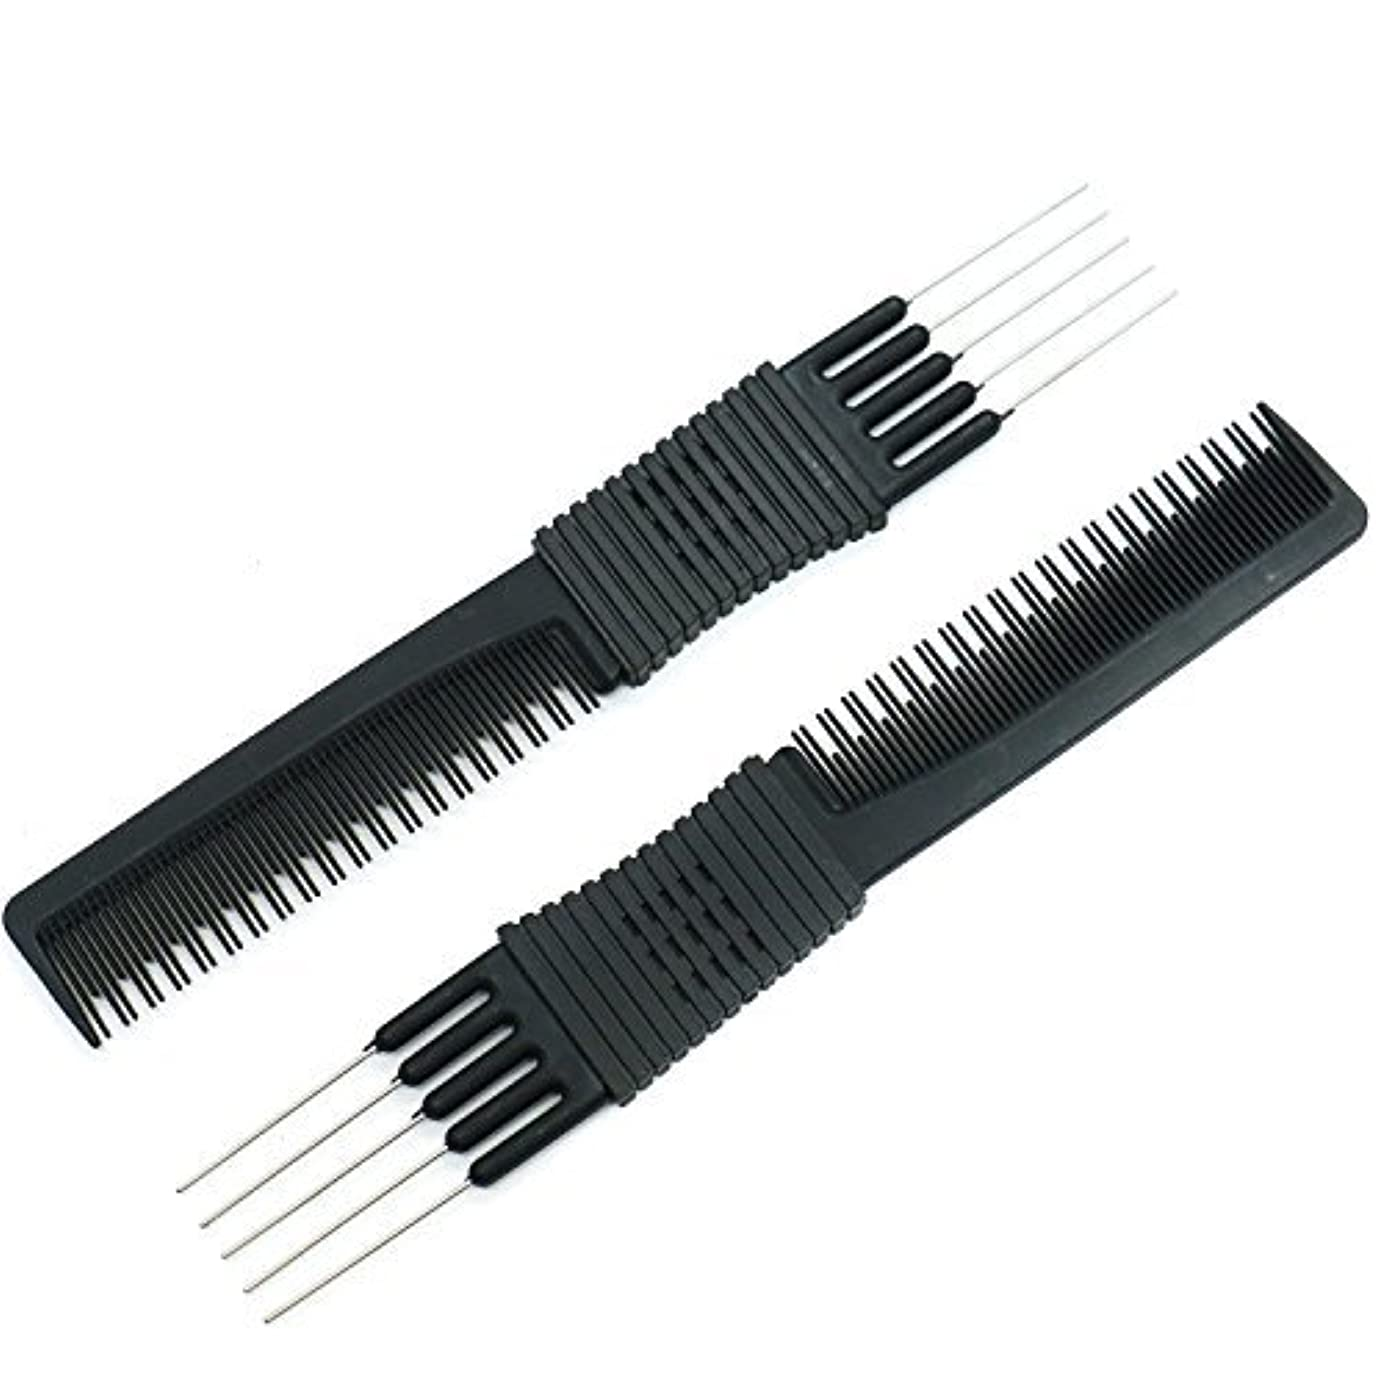 グレートバリアリーフおばさん欲望HUELE 2pcs Lift Teasing Combs with Metal Prong Pro Salon Teasing Lifting Fluffing Comb with 5 Stainless Steel Pins (Black) [並行輸入品]